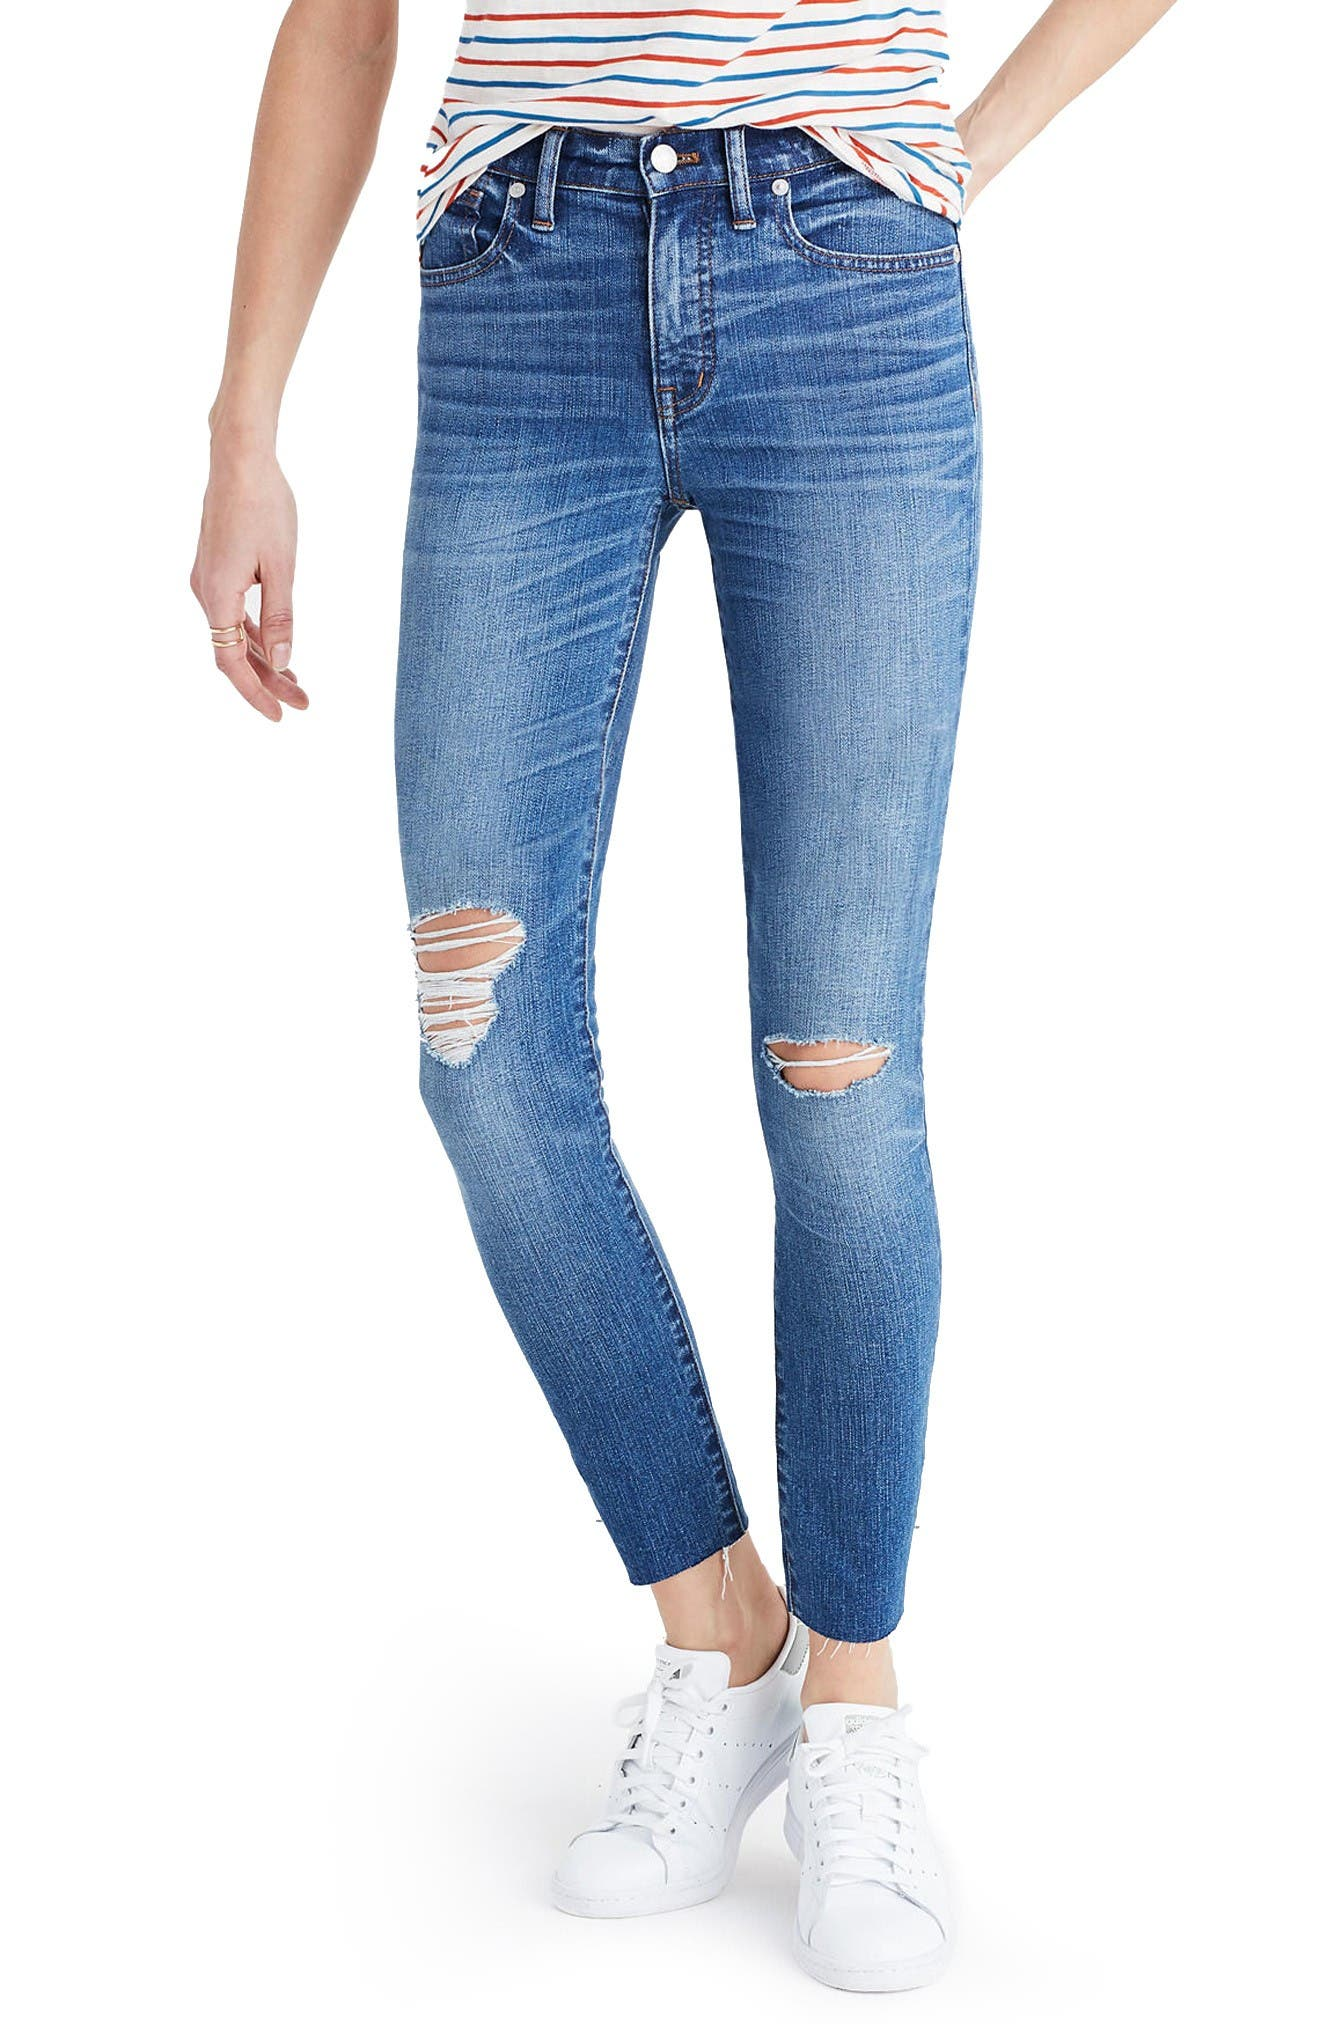 Alternate Image 1 Selected - Madewell 9-Inch High-Rise Skinny Crop Jeans (Bruce Wash)